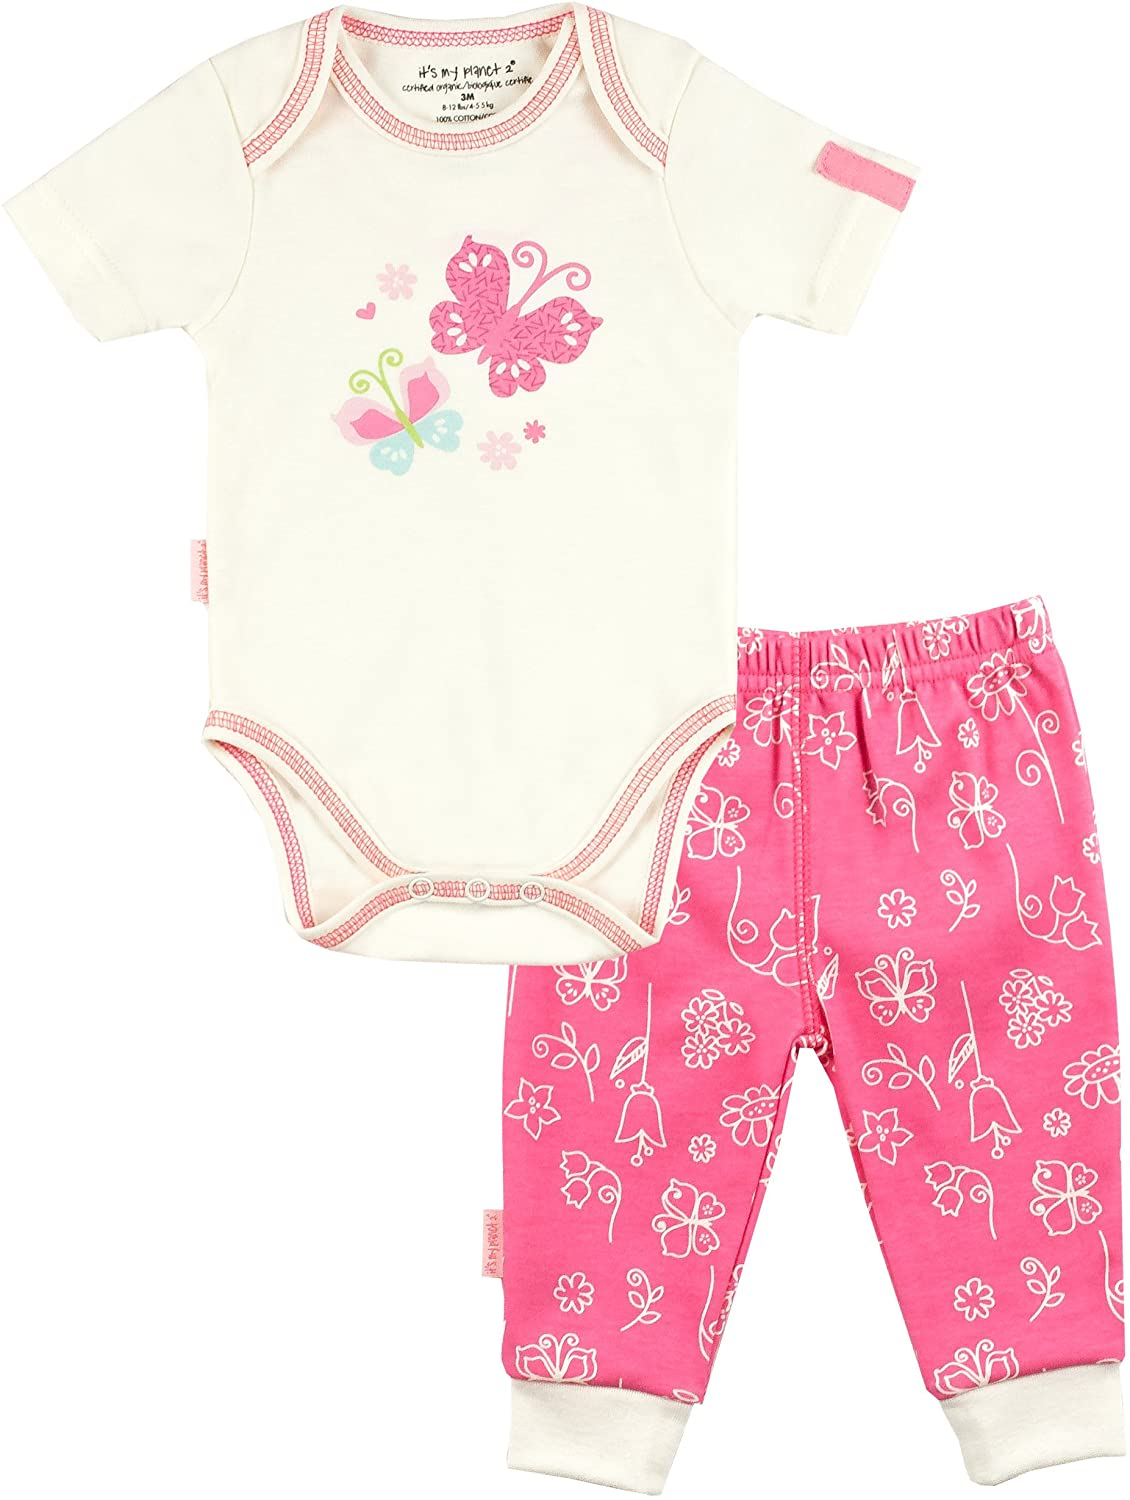 It's My Planet Baby Girls' Newborn Cotton Short Sleeve Bodysuit and Play Pant Set